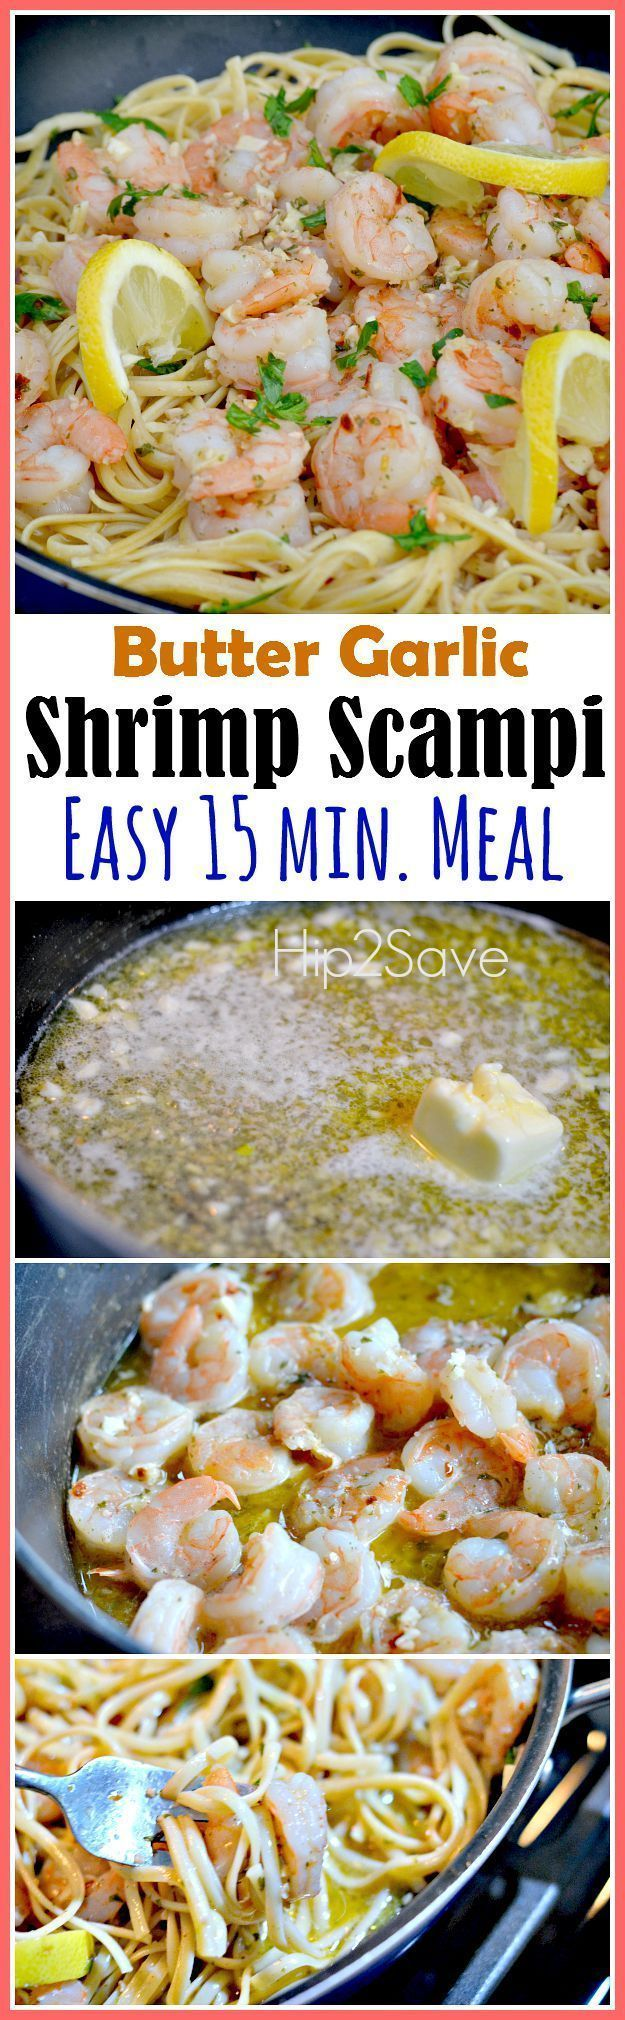 Shrimp Scampi (Easy AND Quick Meal Idea). A delicious pasta dish that's filled with rich flavors made with plump shrimp. Enjoy this as your main dish tonight or on the weekend. Enjoy coupons, craft ideas and recipes at Hip2Save.com